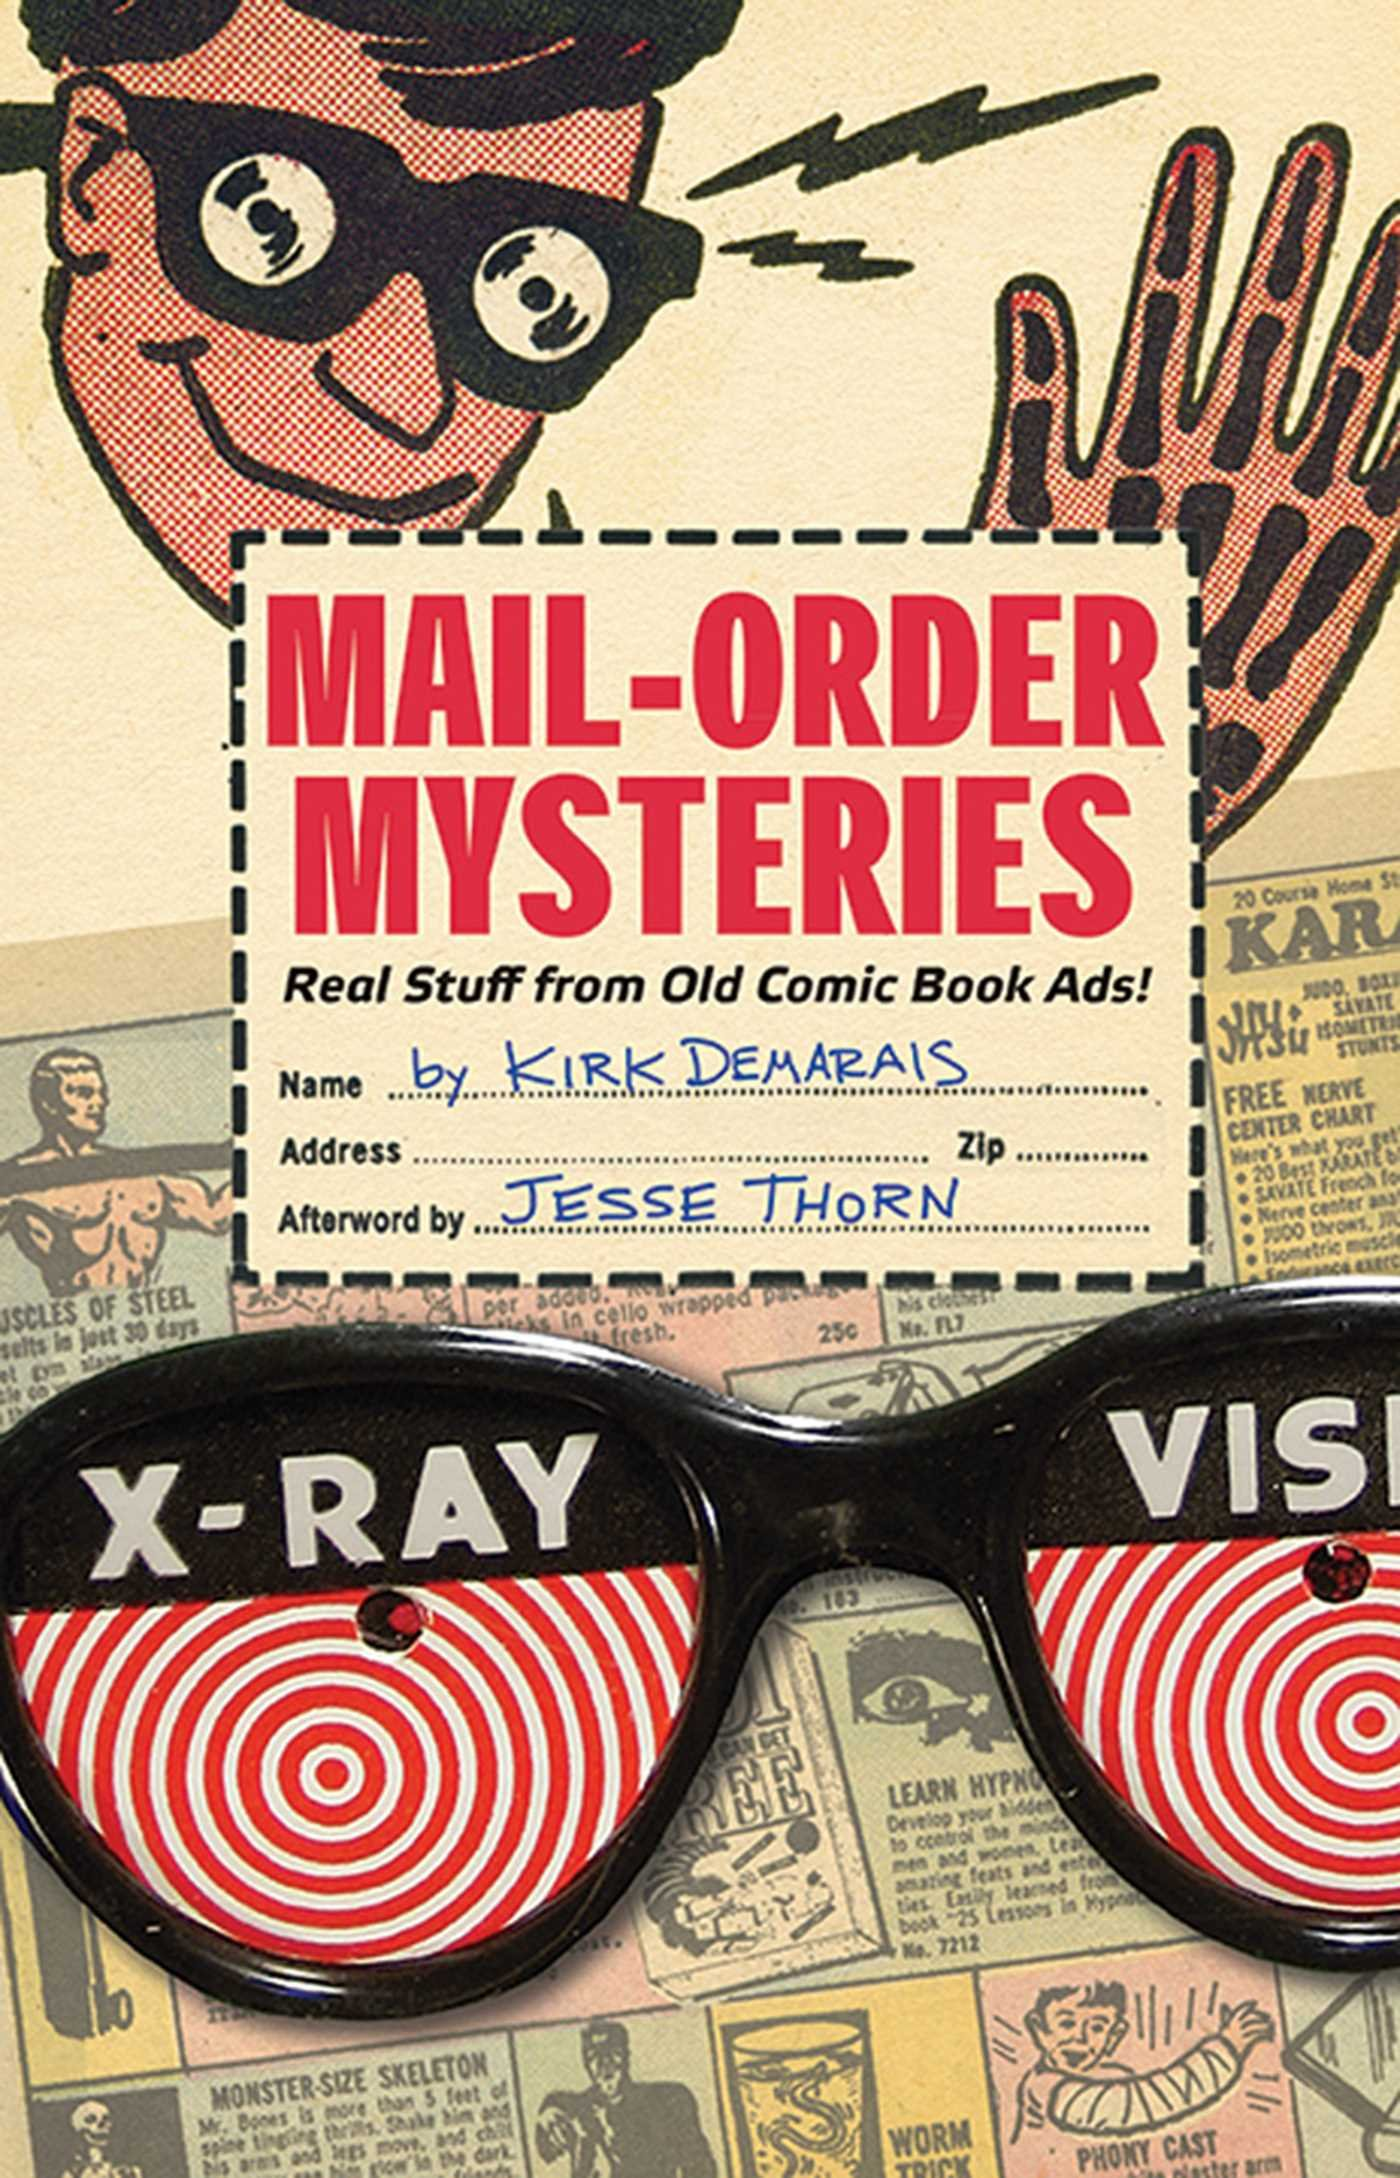 Mail-Order Mysteries: Real Stuff from Old Comic Book Ads!